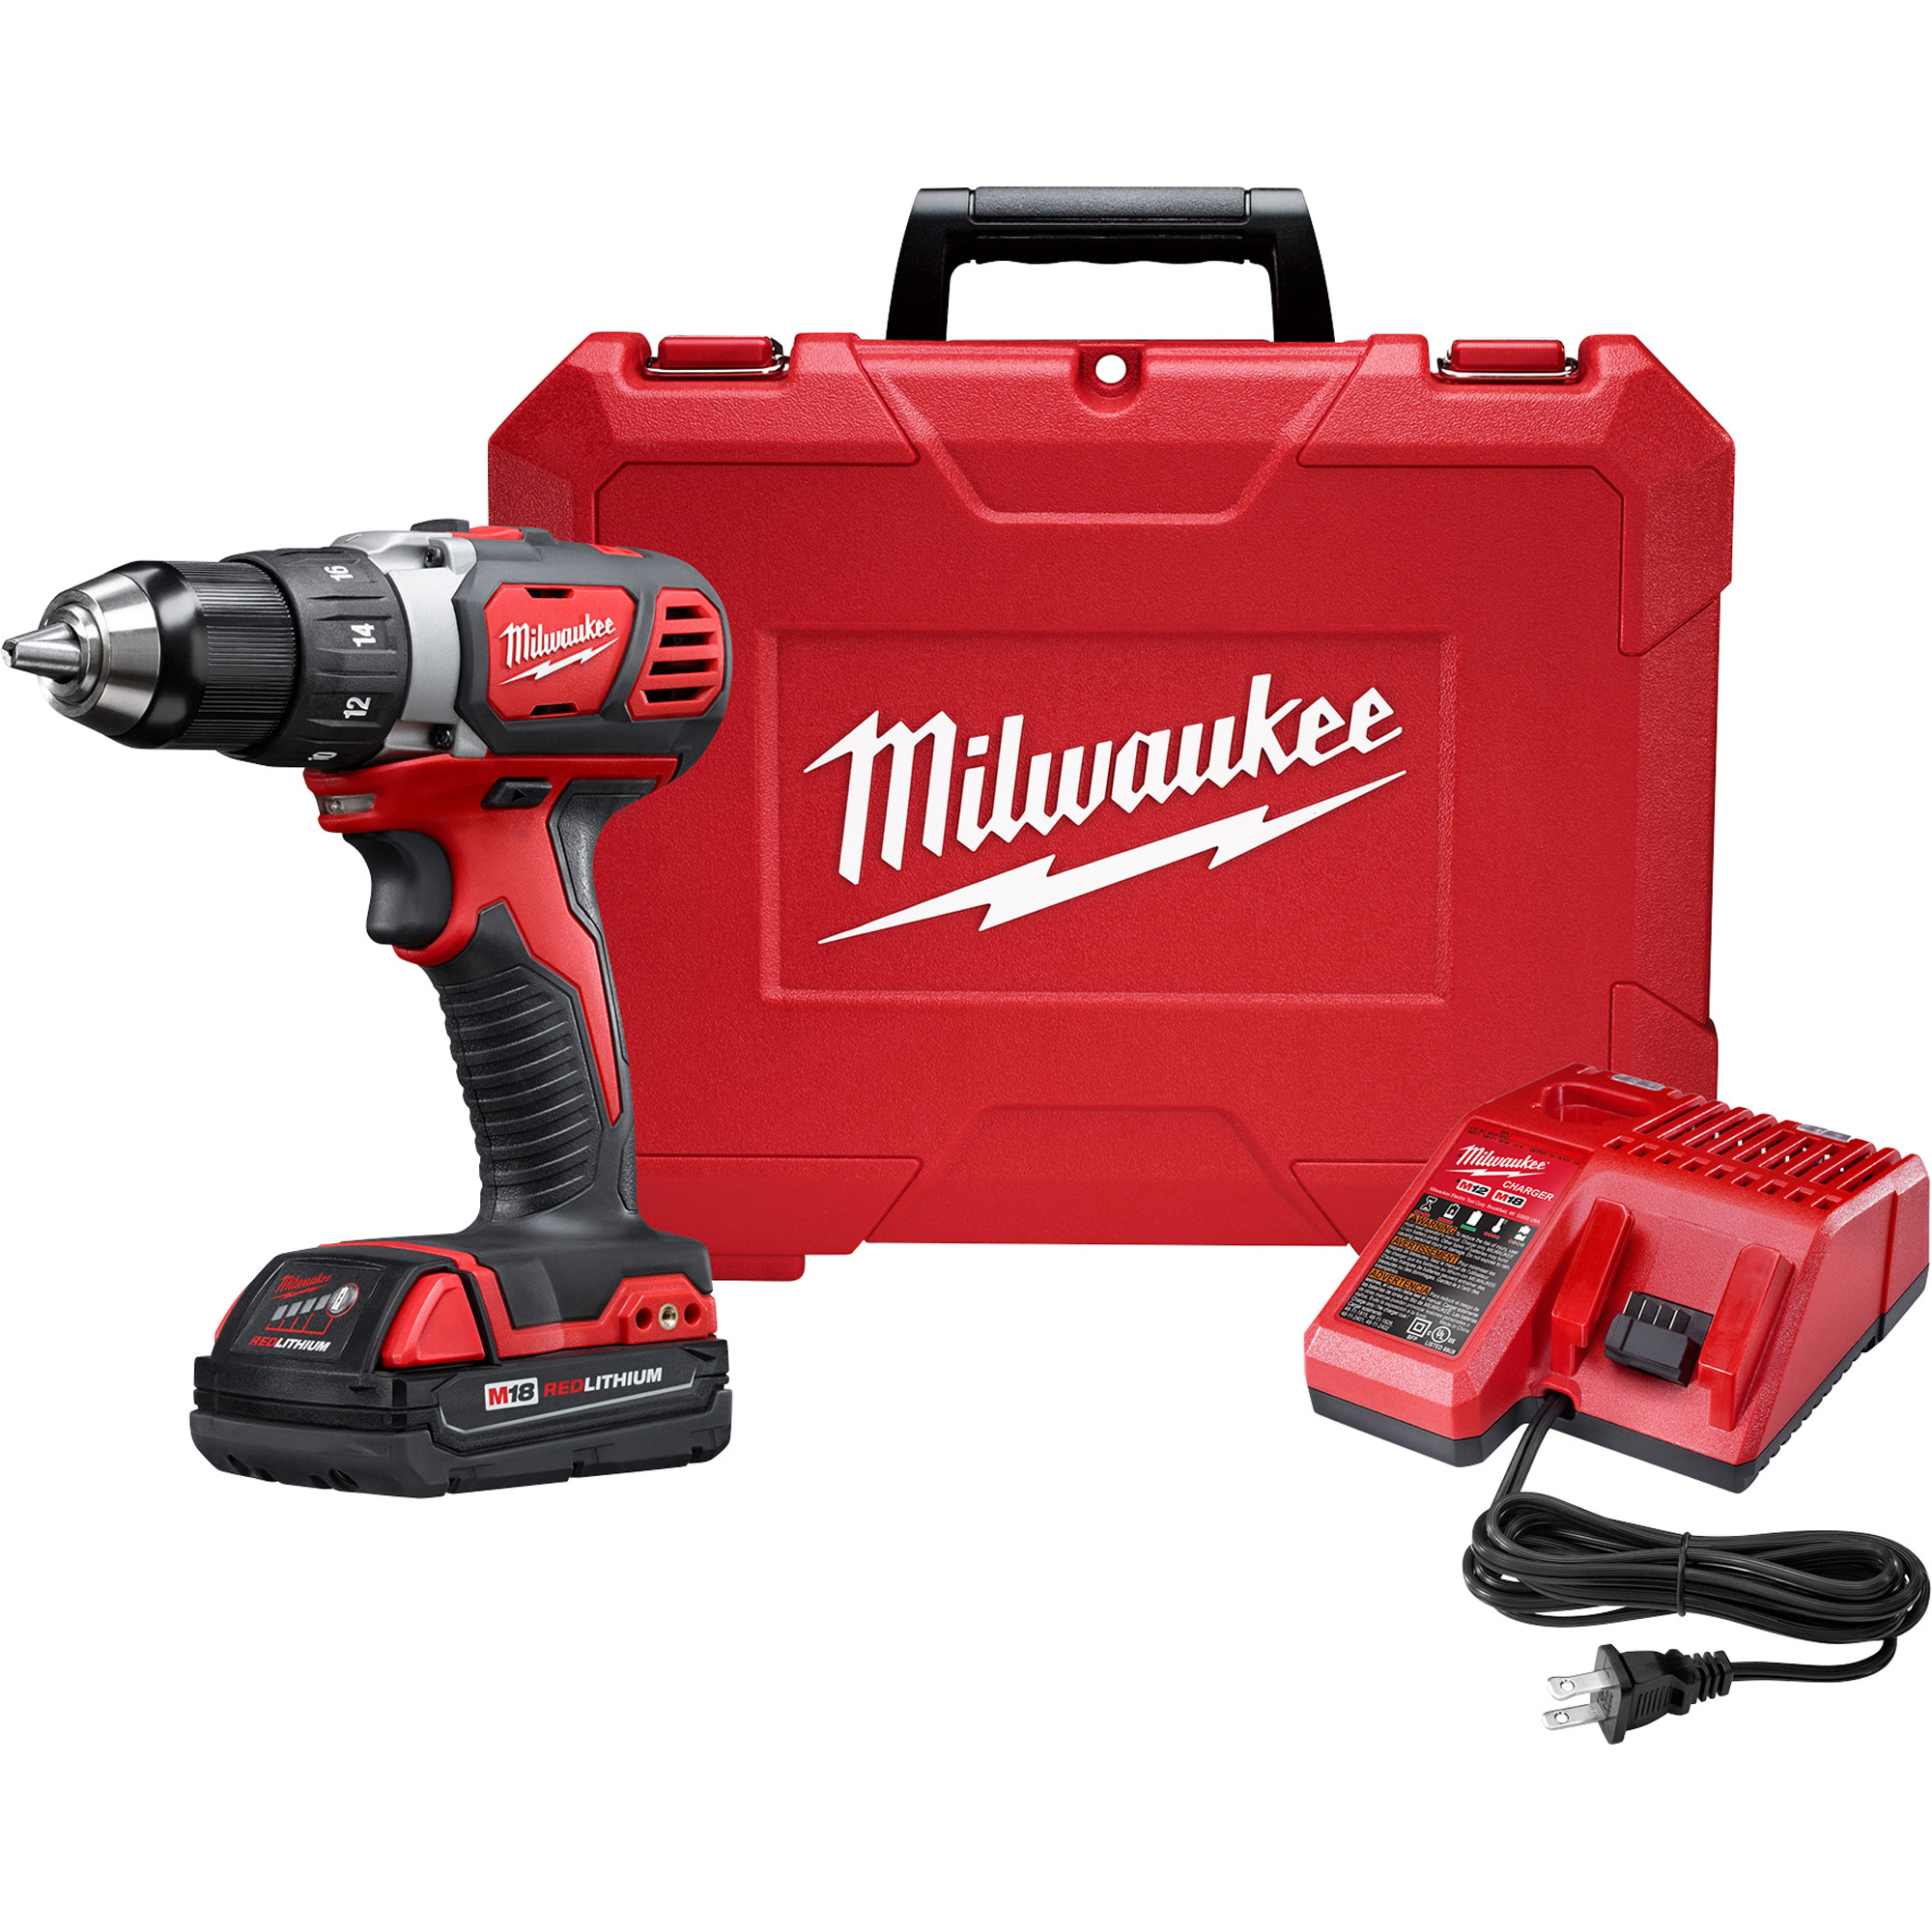 Milwaukee From Northern Tool Equipment